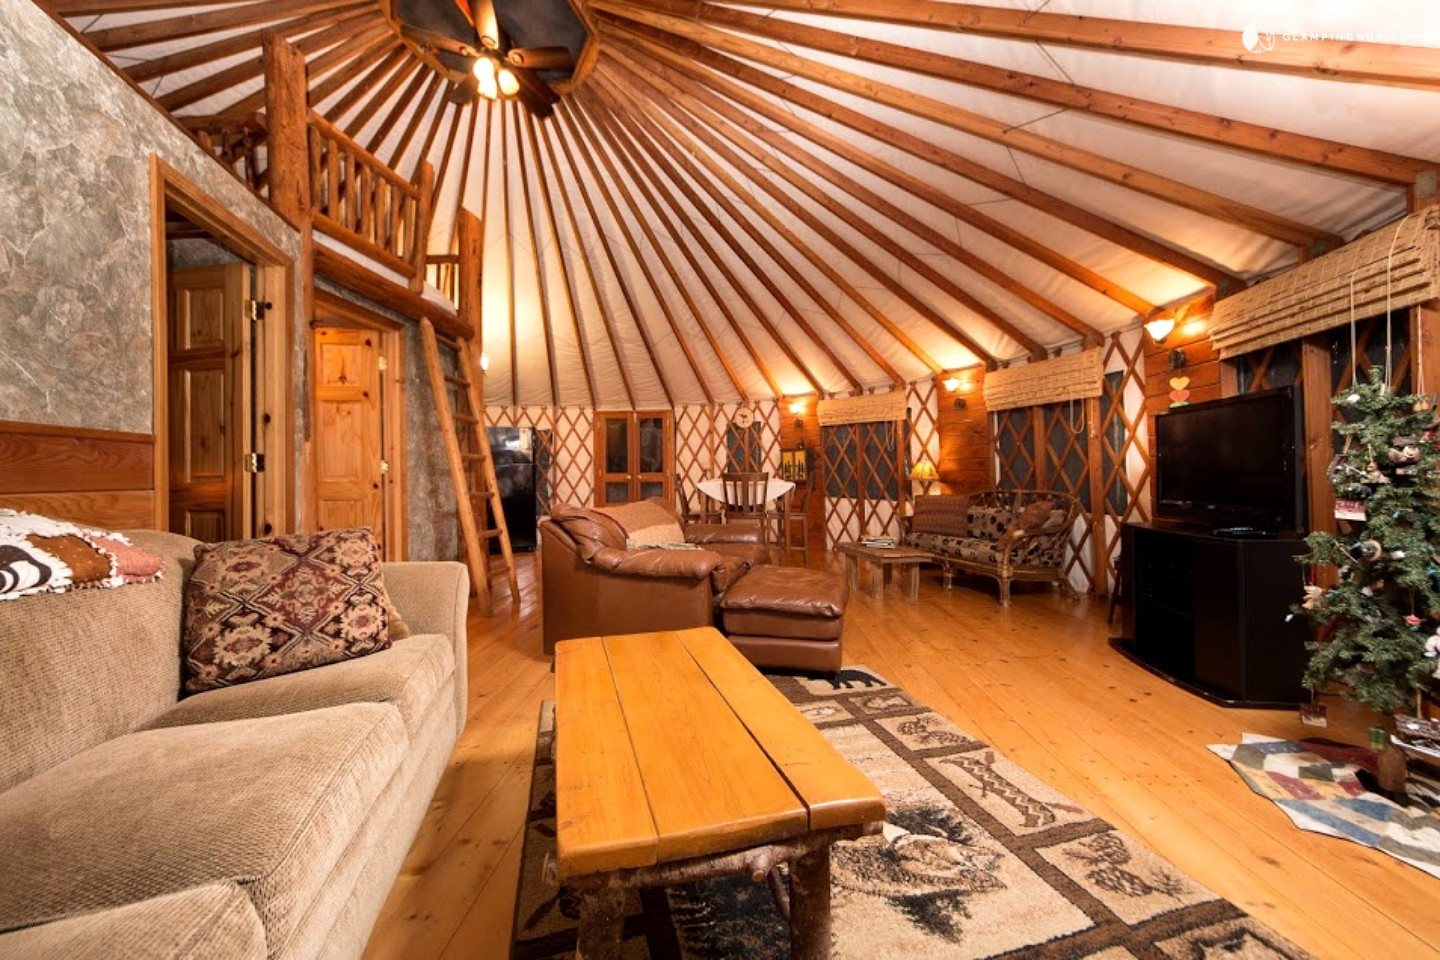 Luxury yurts pictures to pin on pinterest pinsdaddy for Yurt bathroom designs